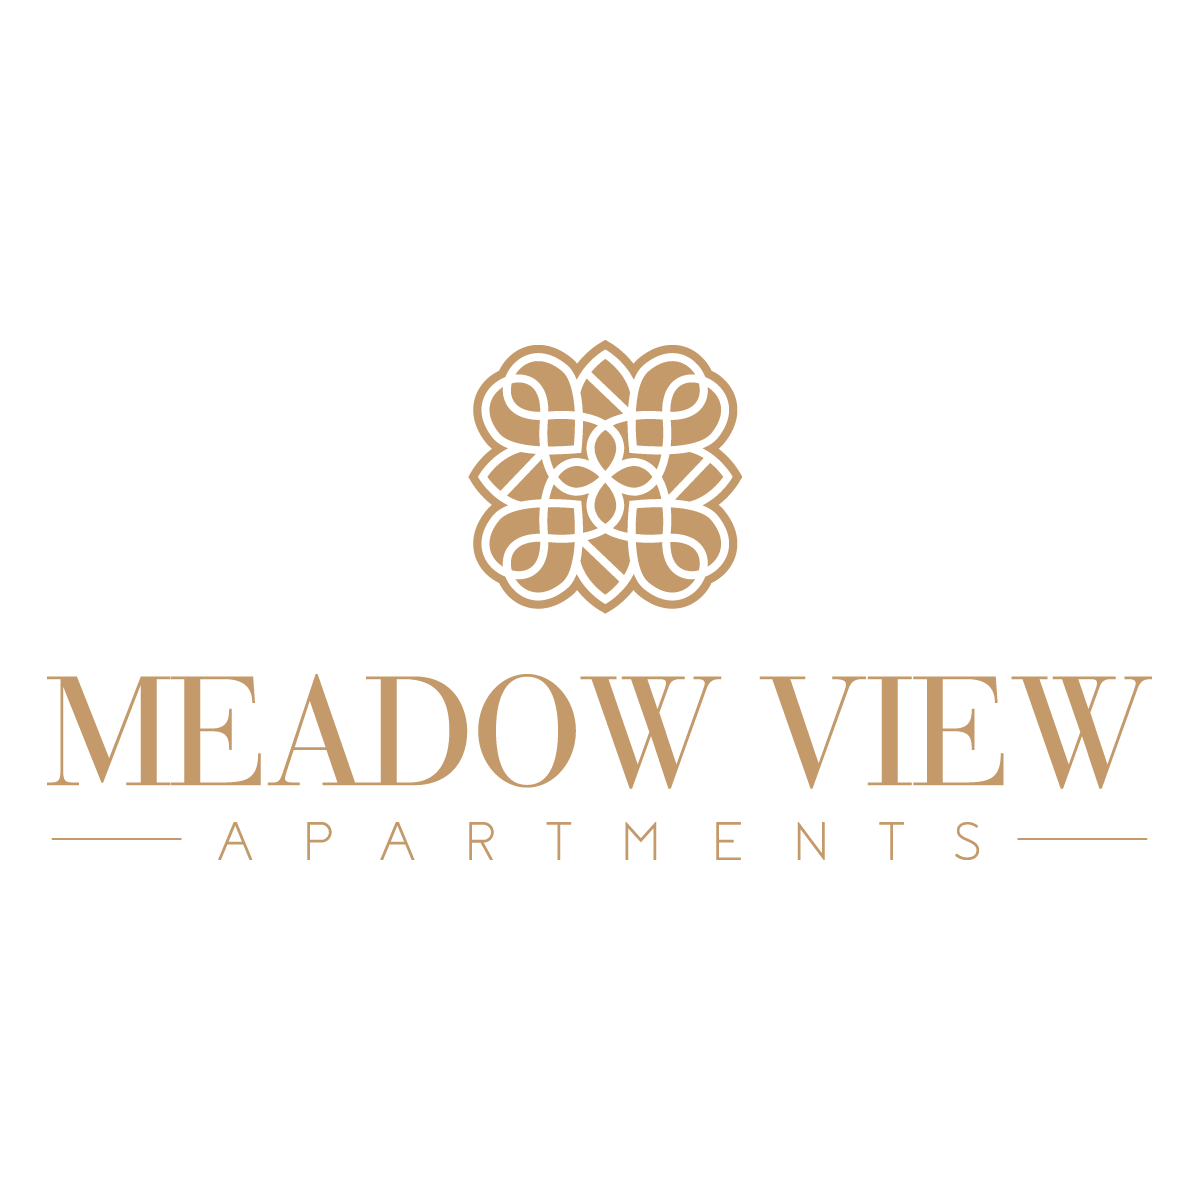 Meadow View image 11